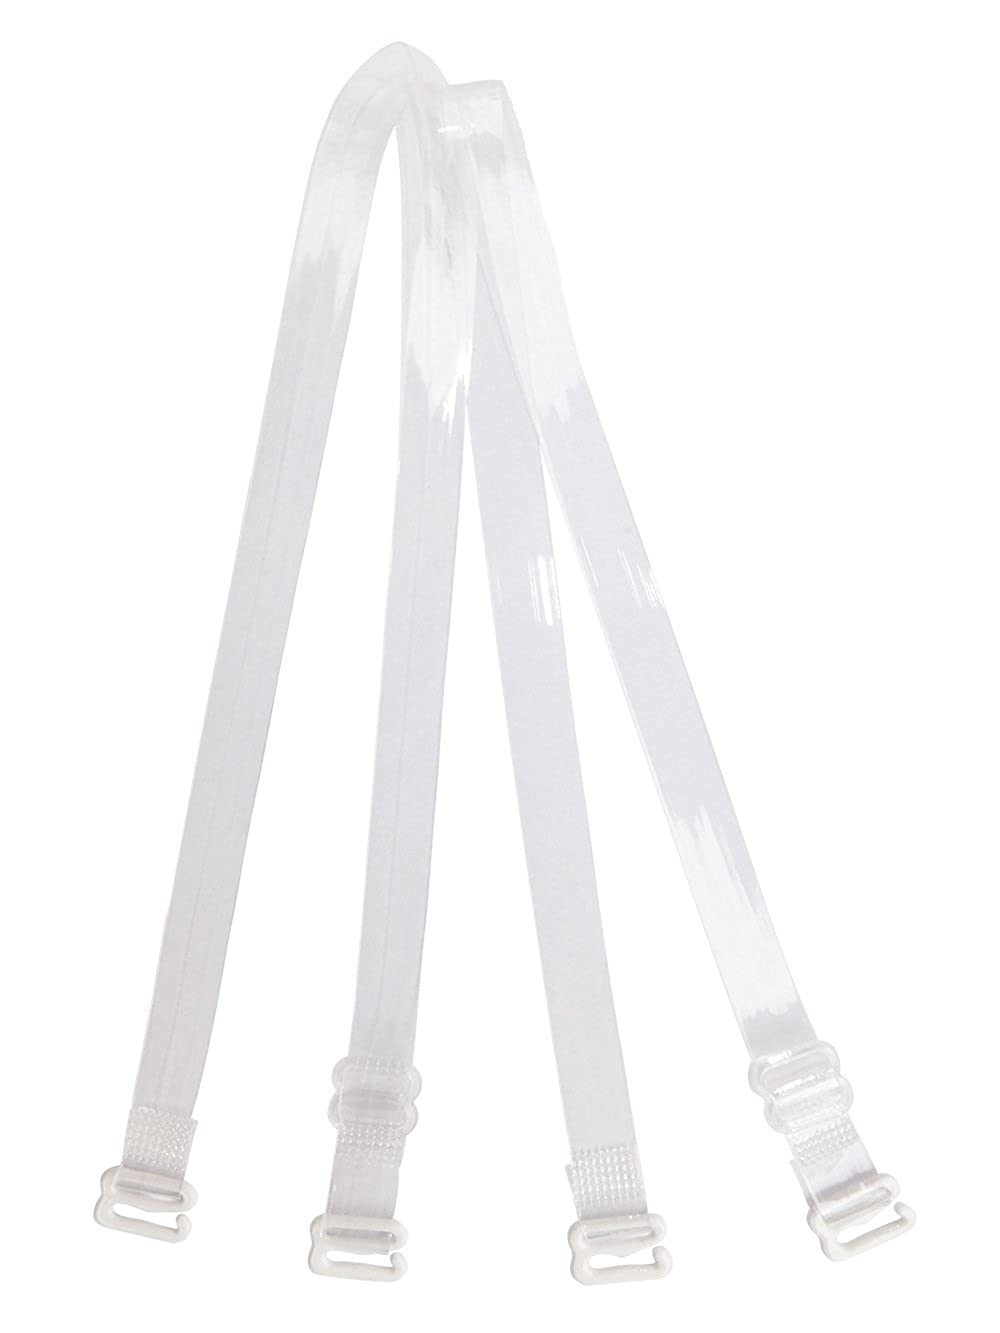 Clear Invisible Bra Shoulder Strap - Metal Hook w/Plastic Cover, 3/8 5/8 3/4